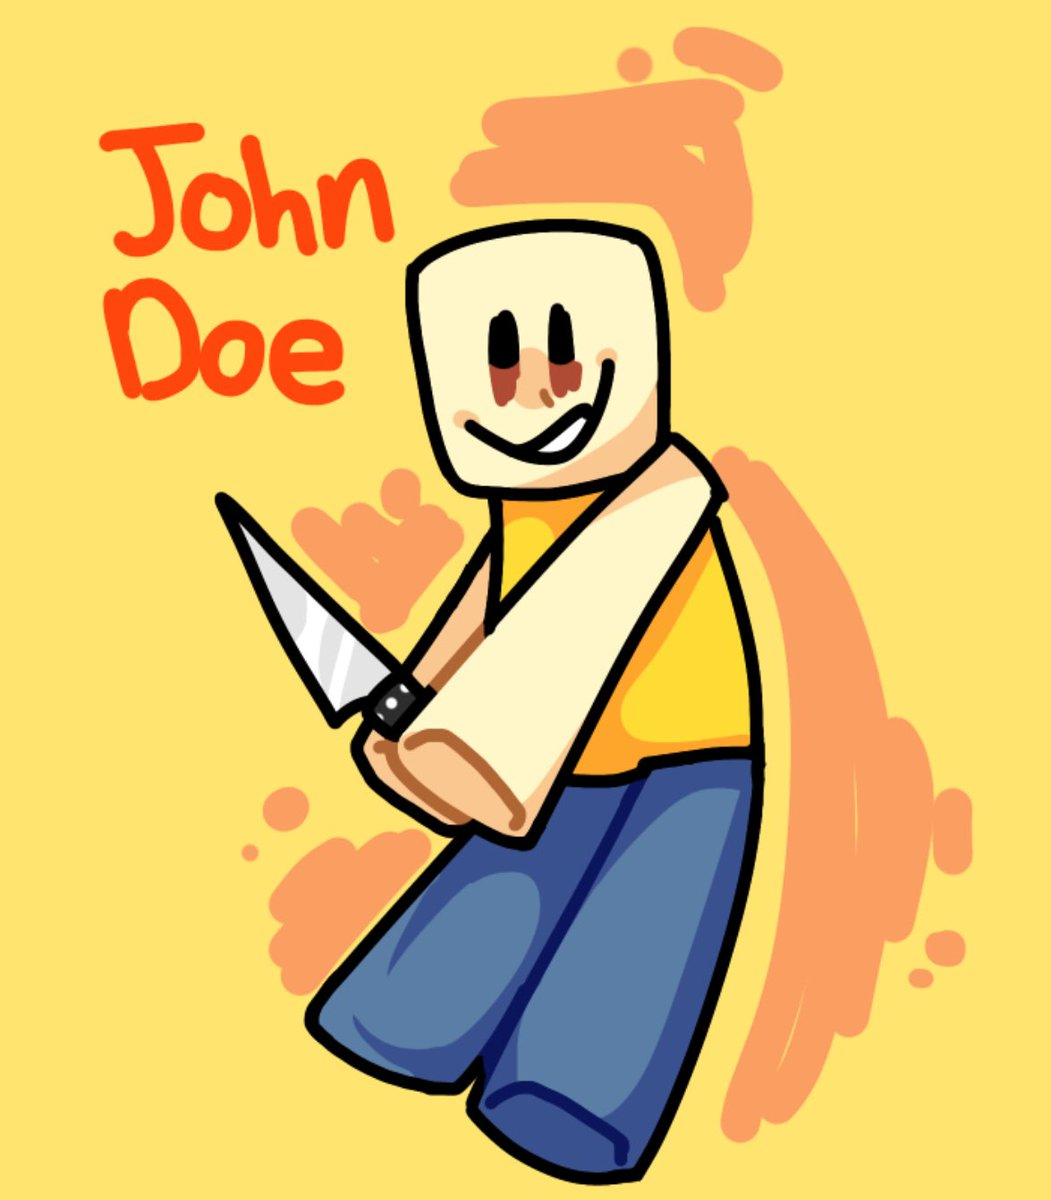 Roblox Hacker On March 18 Solarscary On Twitter Happy Roblox John Doe Day March 18th March18th Johndoe Roblox